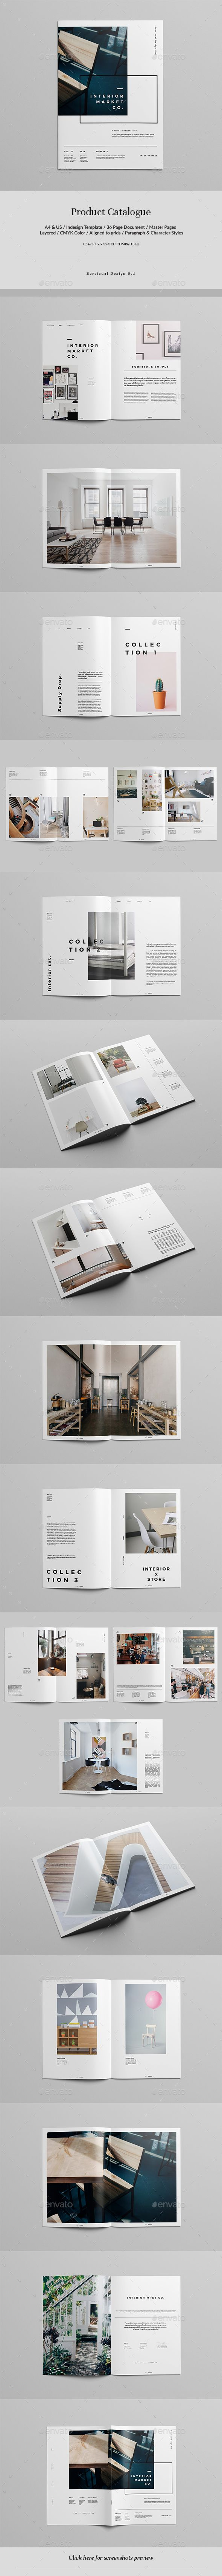 Product Catalogue Brochure Template InDesign INDD - 36 Pages, A4 & US Letter Size